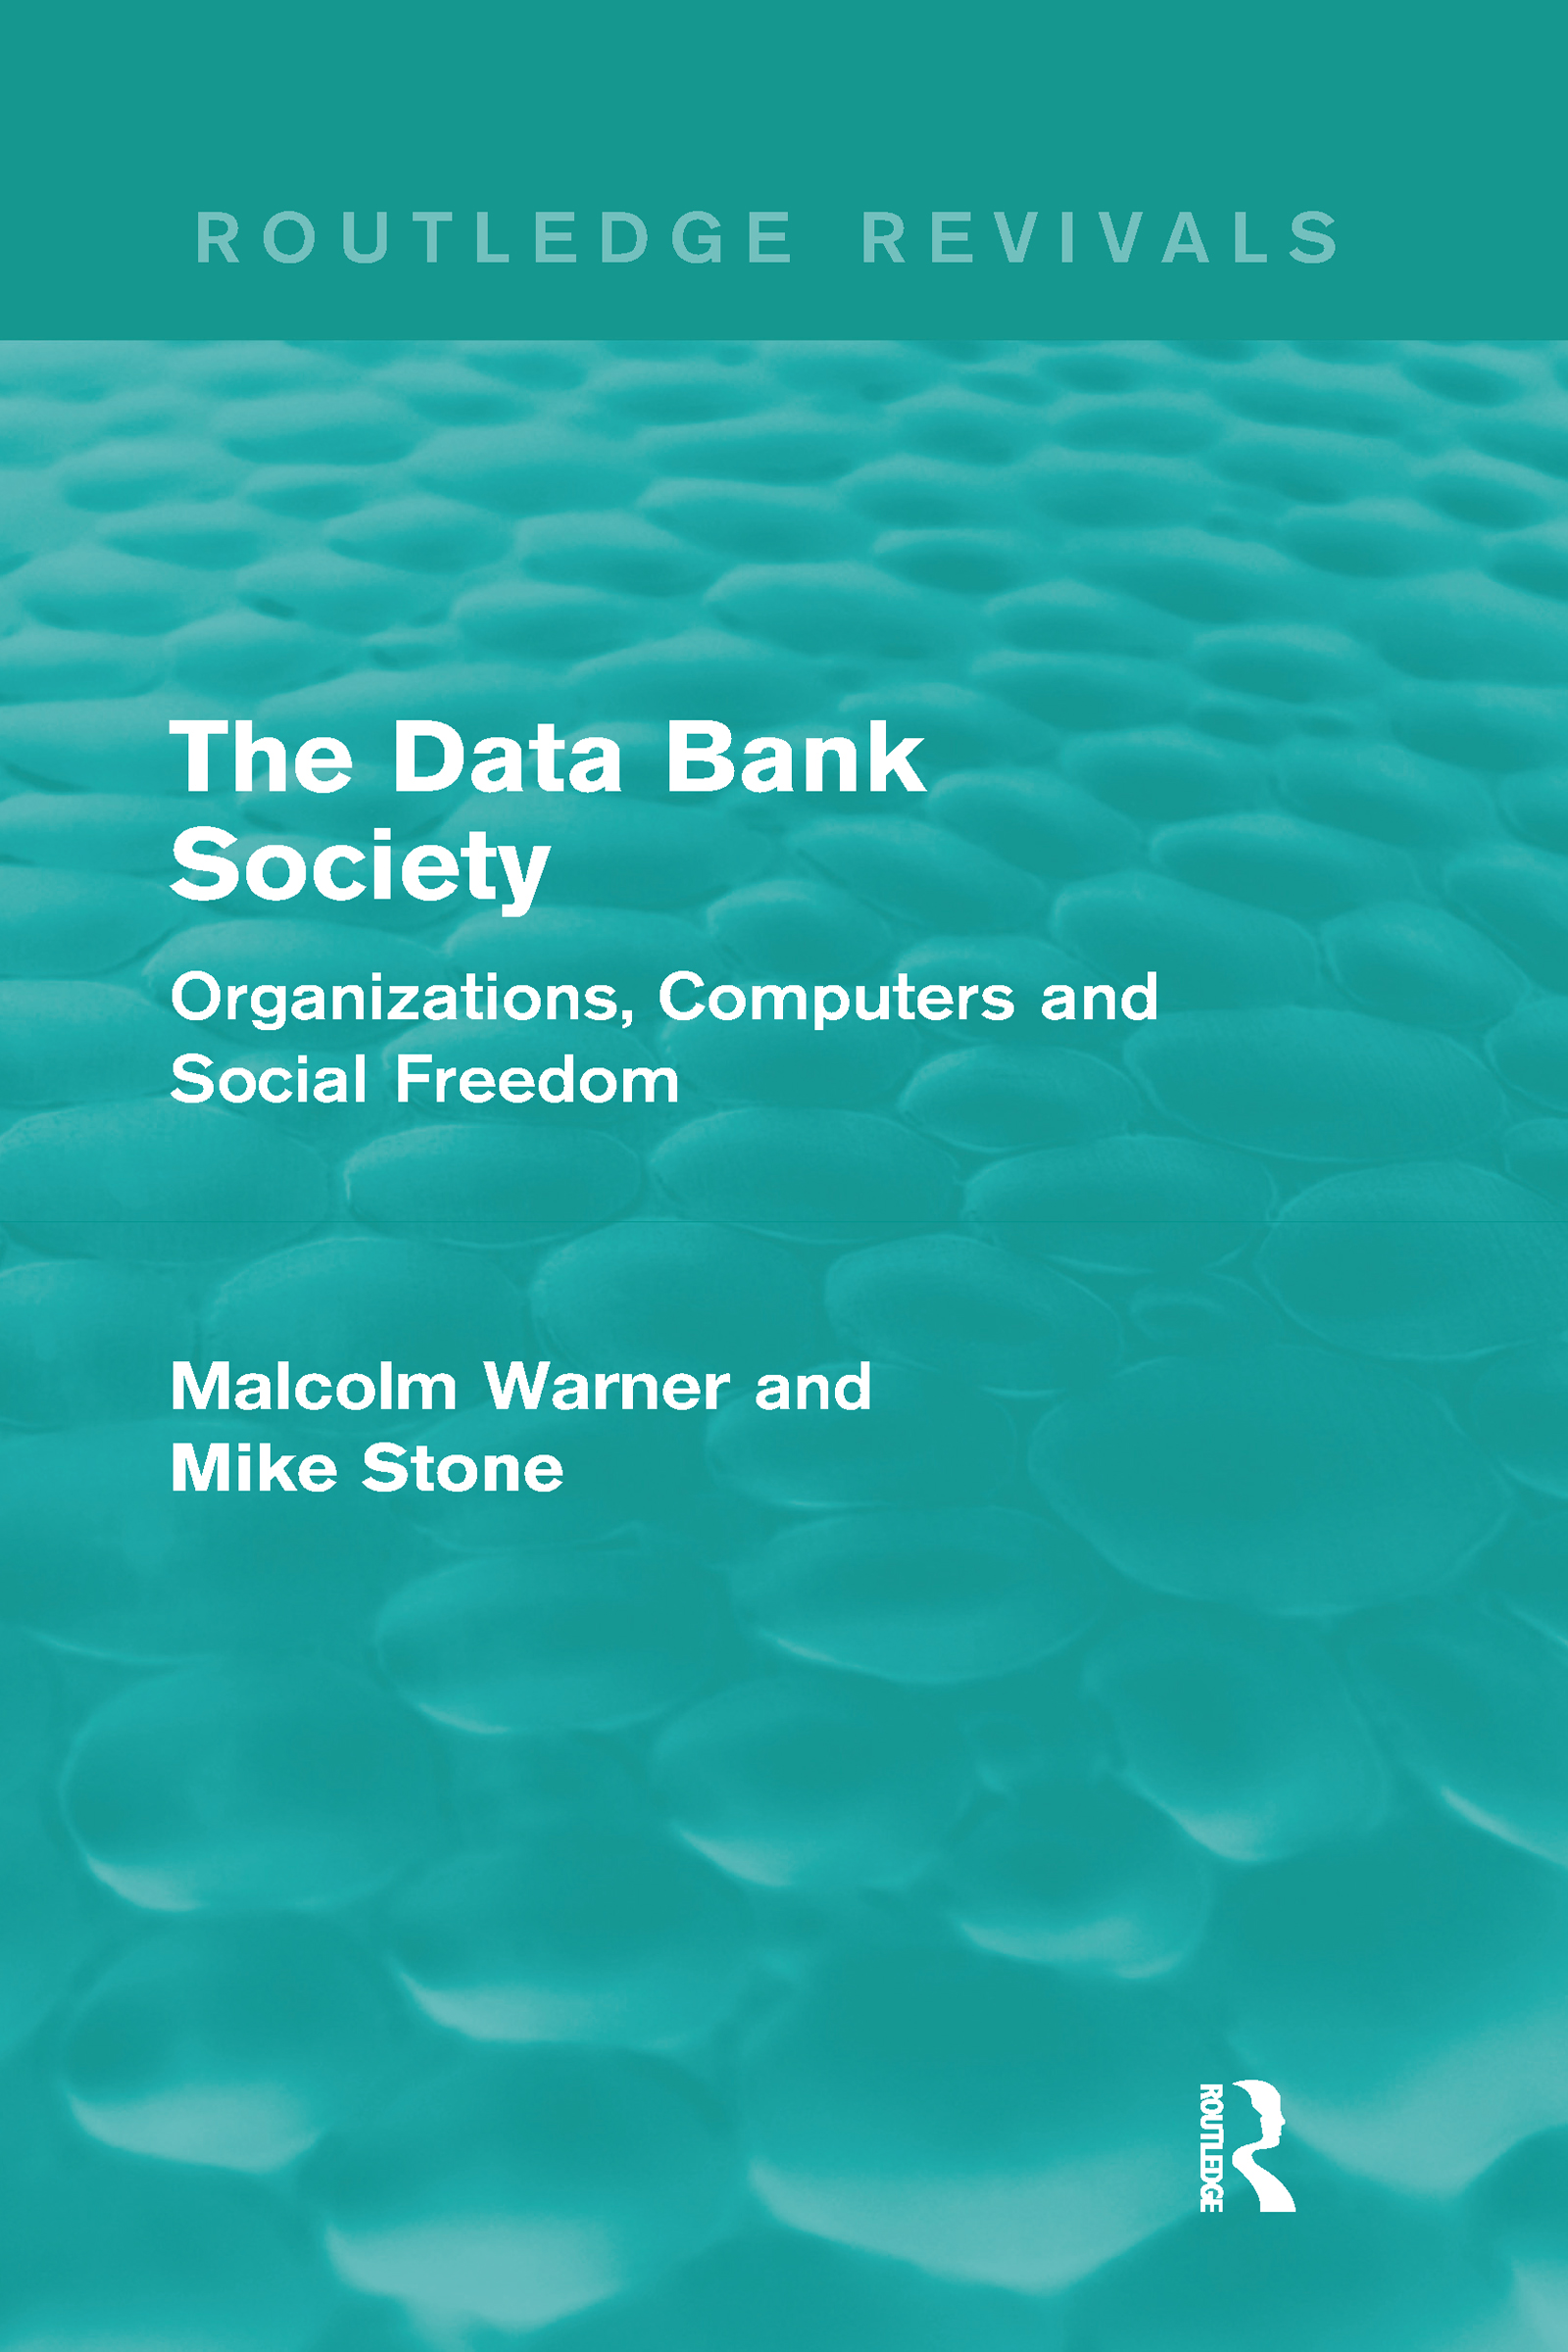 The Data Bank Society (Routledge Revivals): Organizations, Computers and Social Freedom book cover